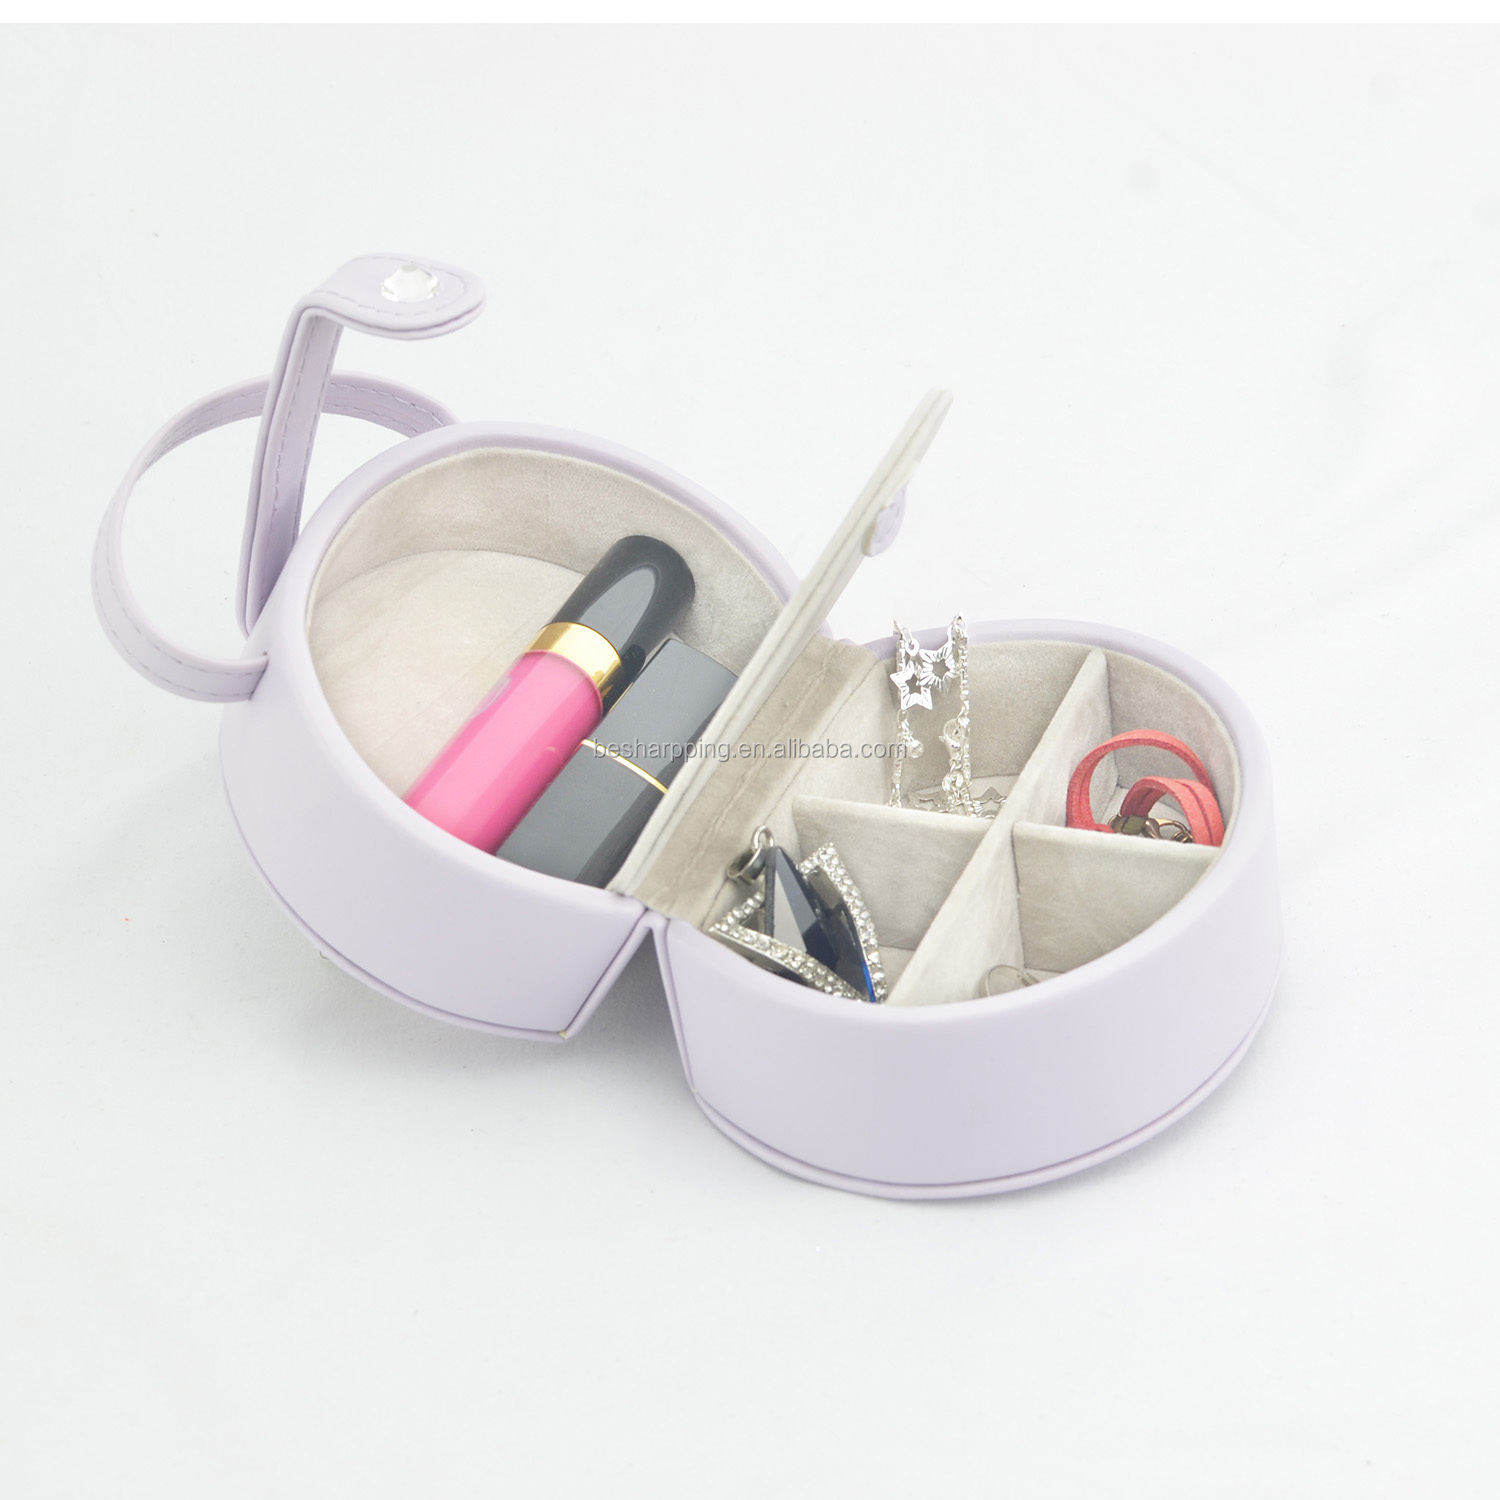 Custom Logo Handicraft PU Leather Jewelry Storage Case Small Mini Makeup Cosmetic Organizer Bag for Party